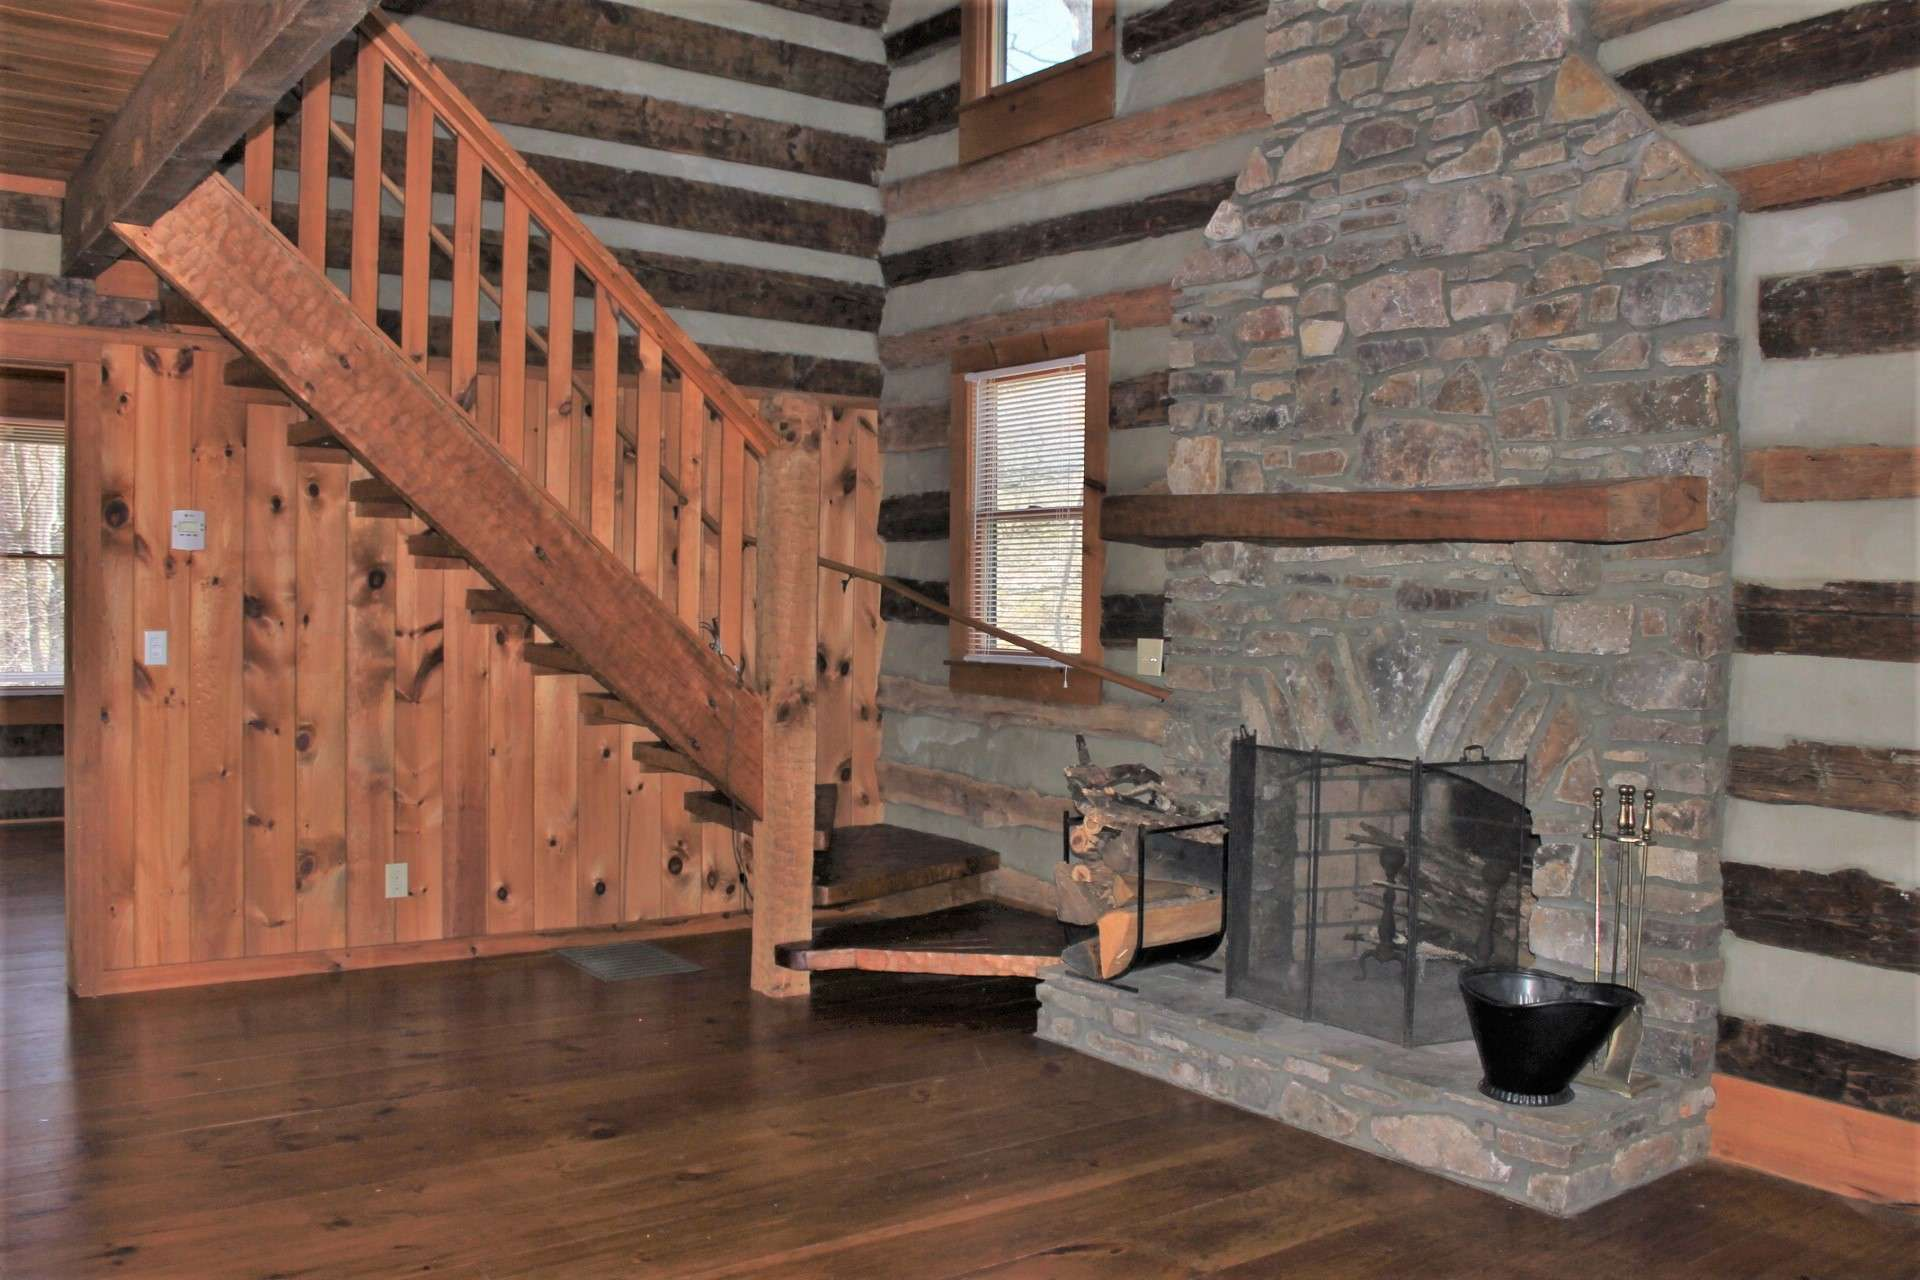 The great room is warm and inviting with rustic details that enhance the experience of log home living.